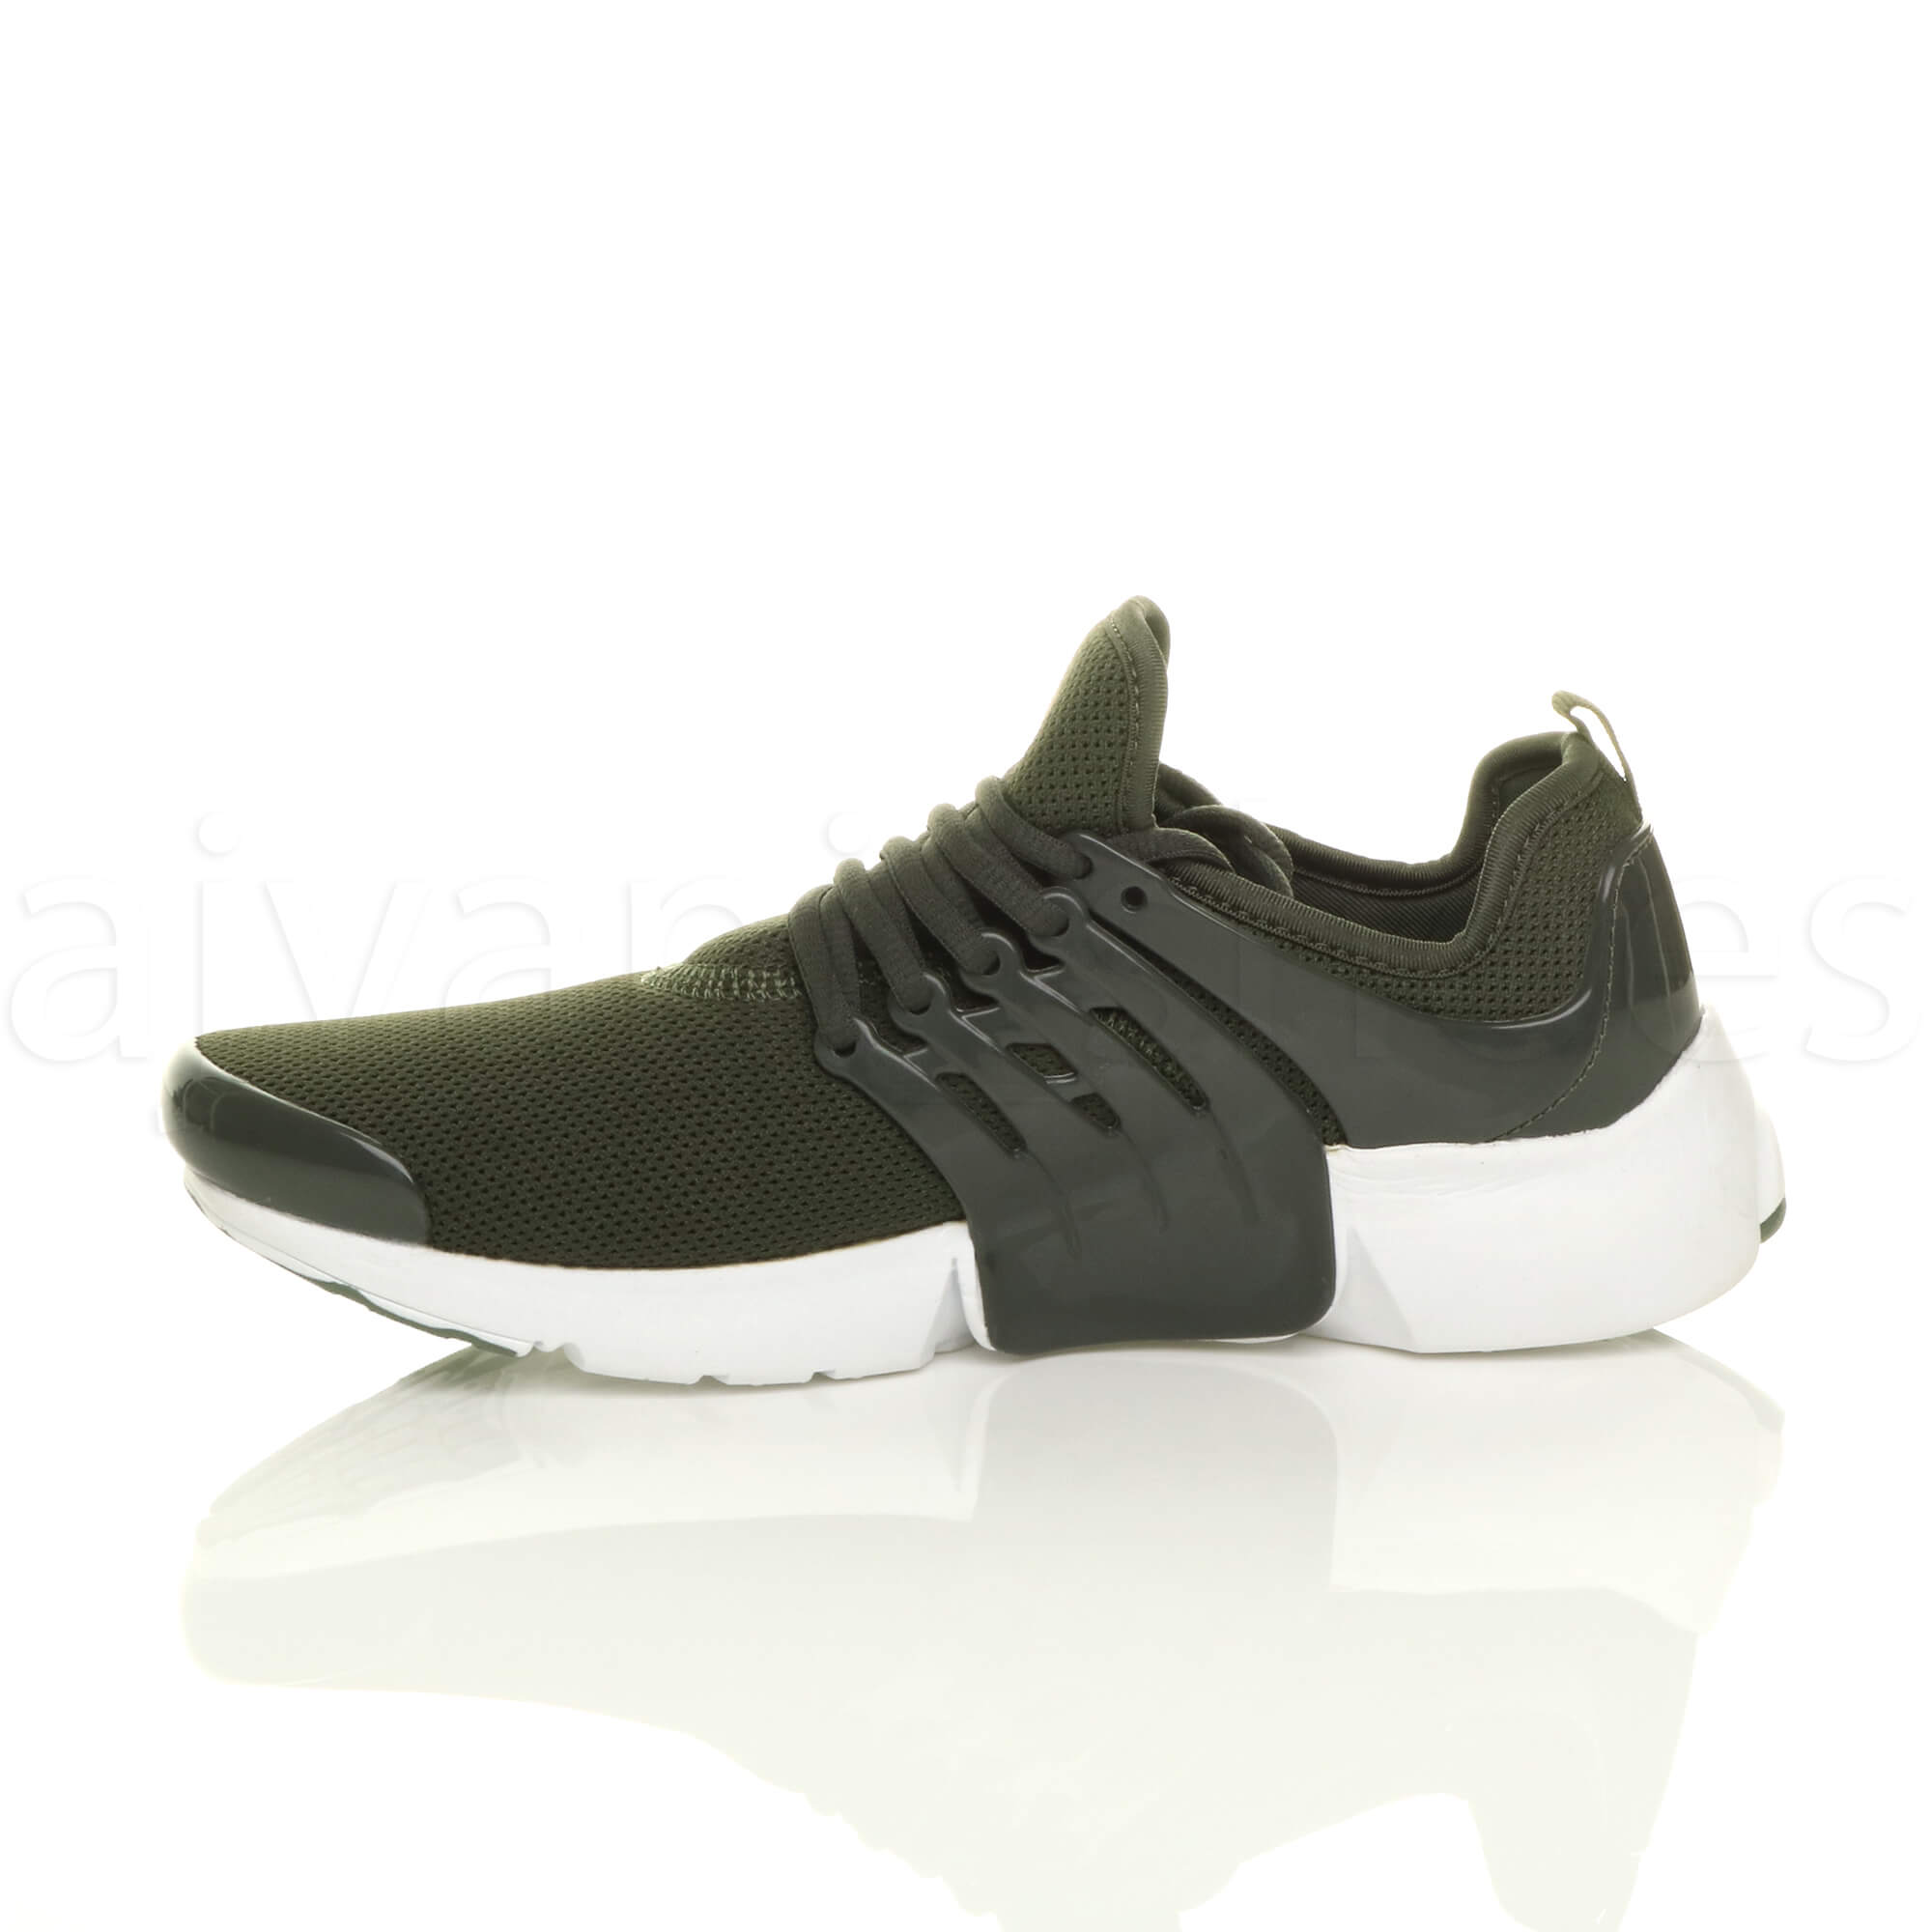 MENS-LACE-UP-SPORTS-GYM-FITNESS-RUNNING-FLEXIBLE-TRAINERS-CASUAL-SNEAKERS-SIZE thumbnail 28